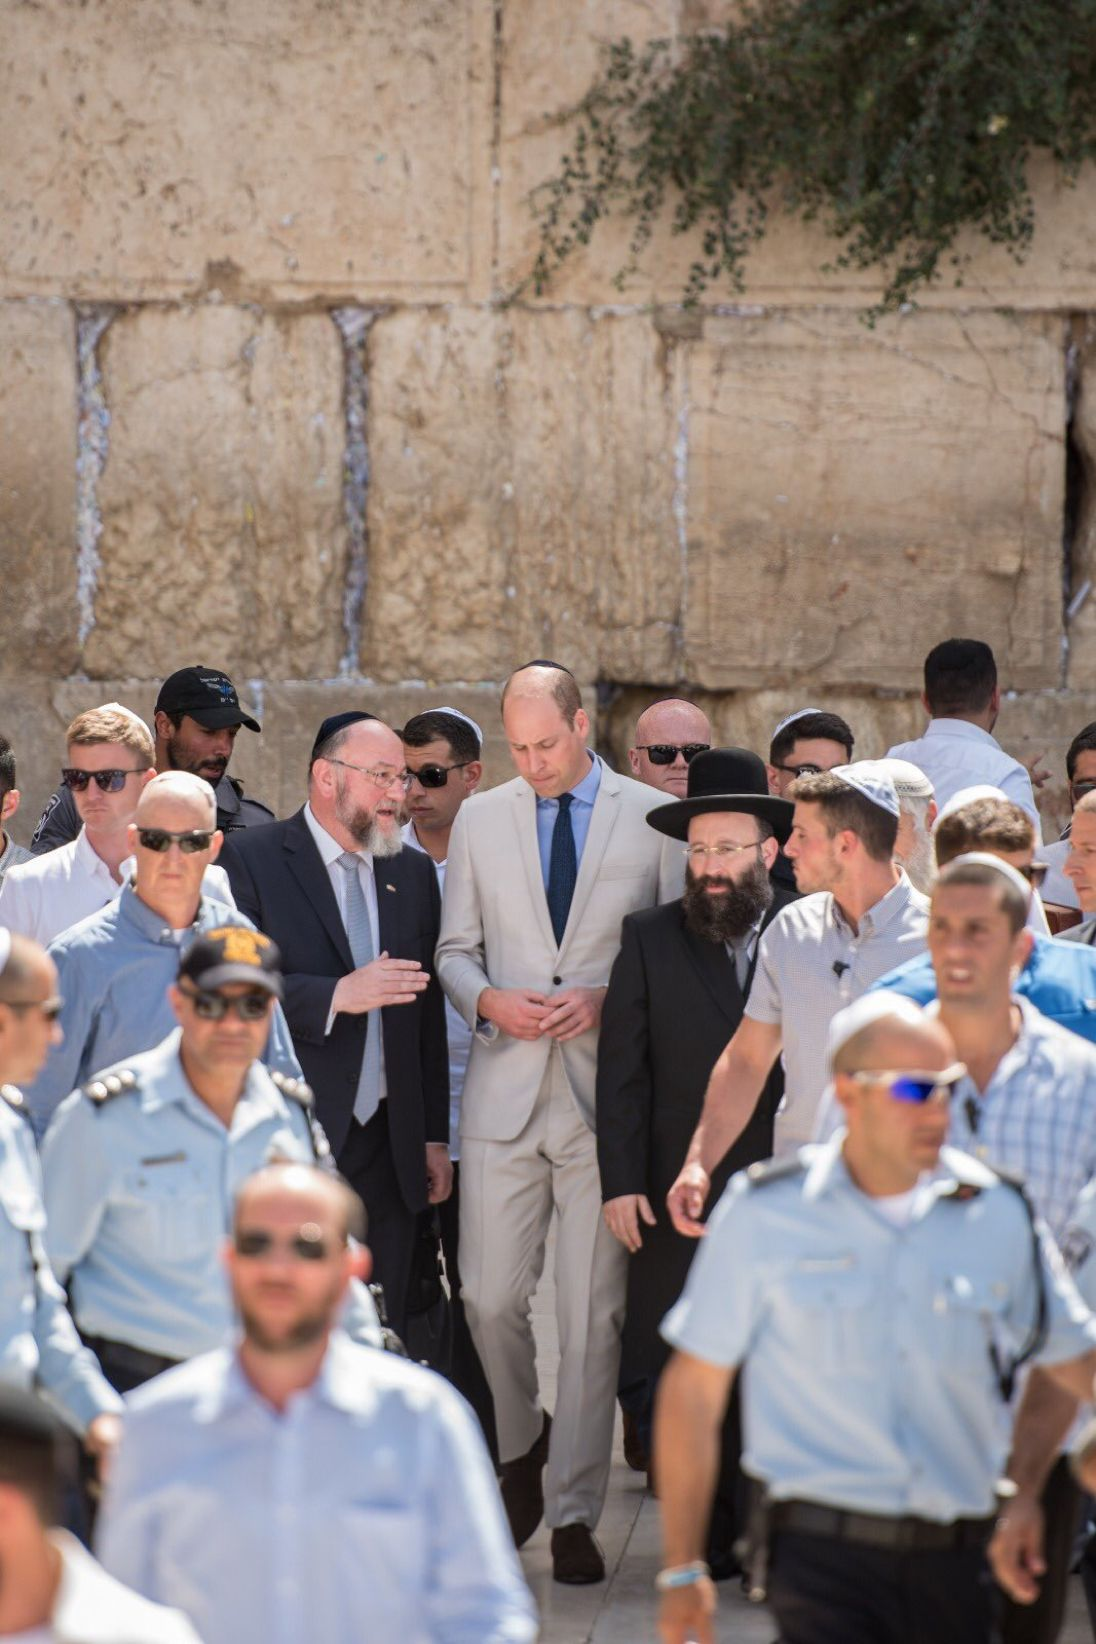 Prince William Wears A Kippah And Visits Holy Sites In